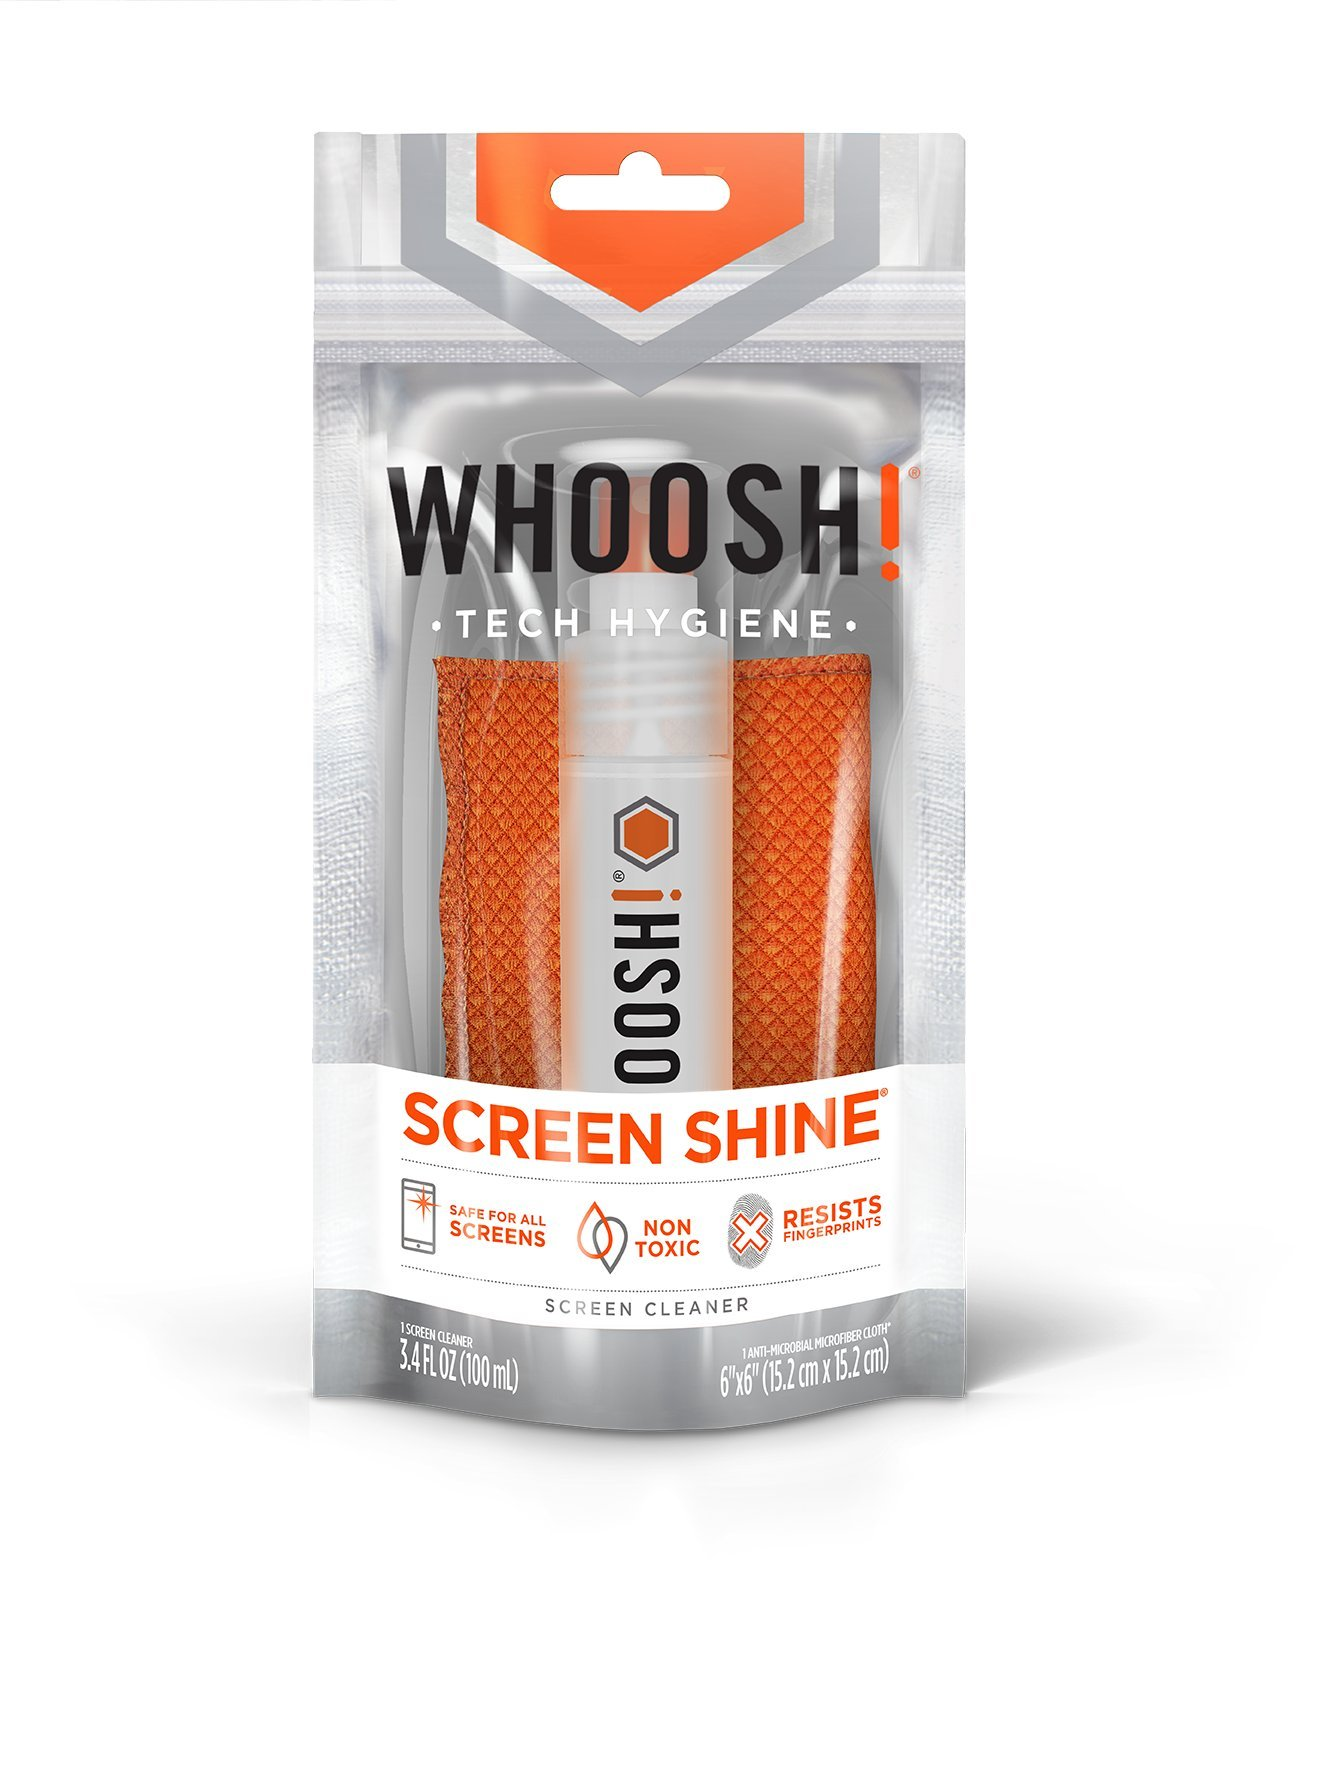 WHOOSH! Award-Wining Screen Cleaner – Safe for all screens – Smartphones, iPads, Eyeglasses, Kindle, LED, LCD & TVs – Includes 3.4 Oz bottle + 1 Premium Antimicrobial Microfiber cloth by WHOOSH